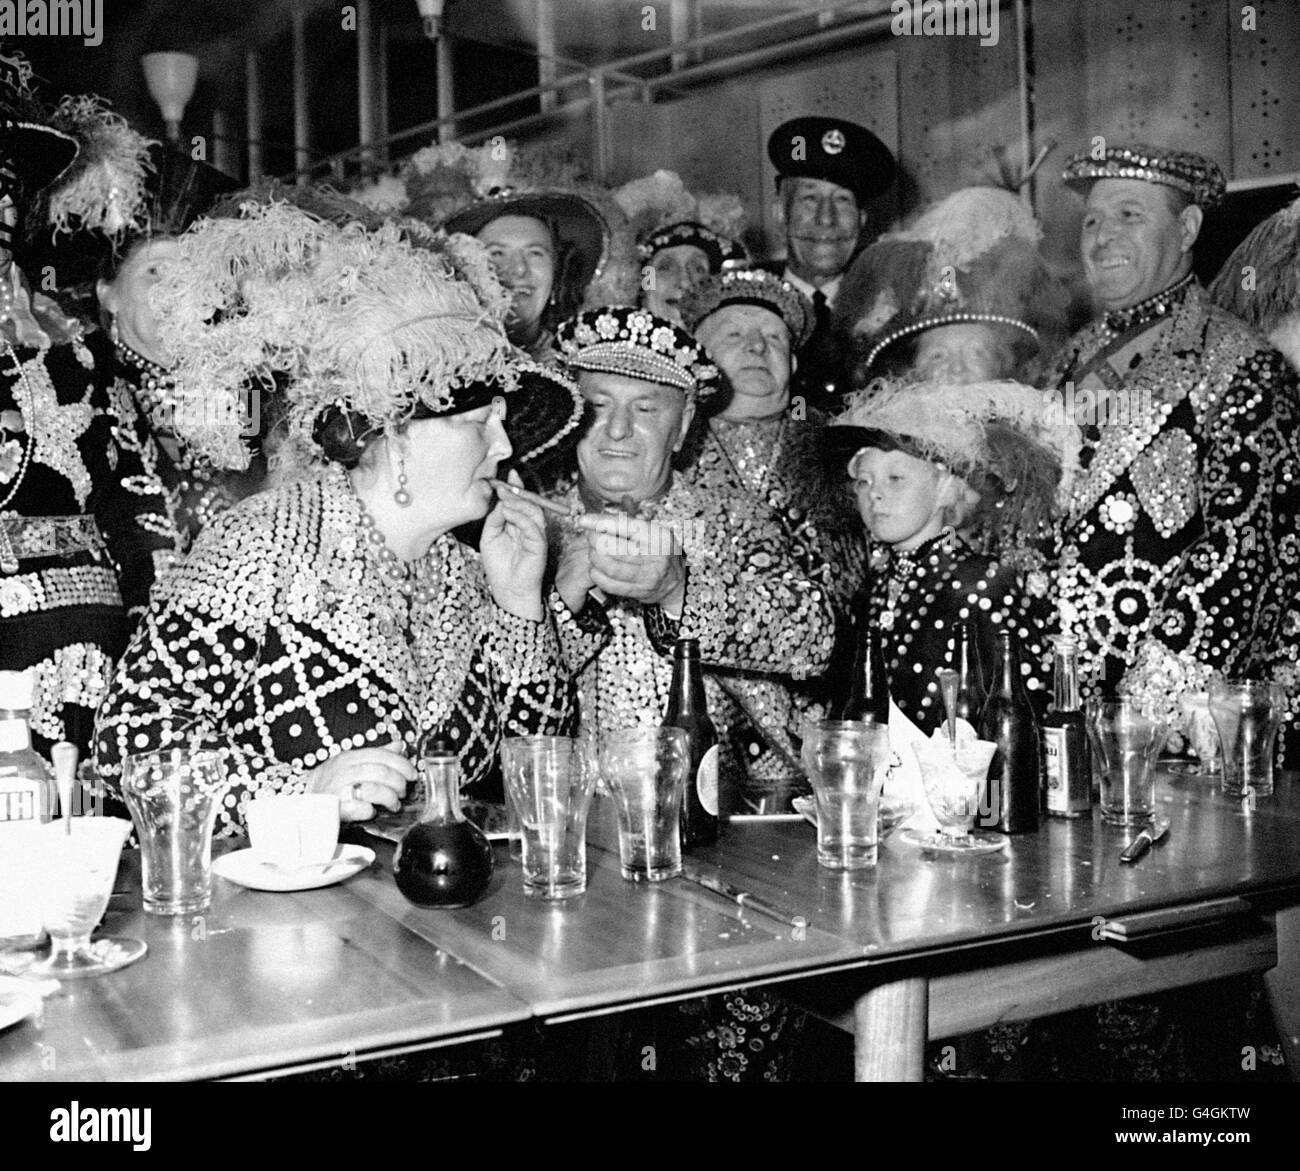 Customs and Traditions - Pearly Kings and Queens - London - Stock Image